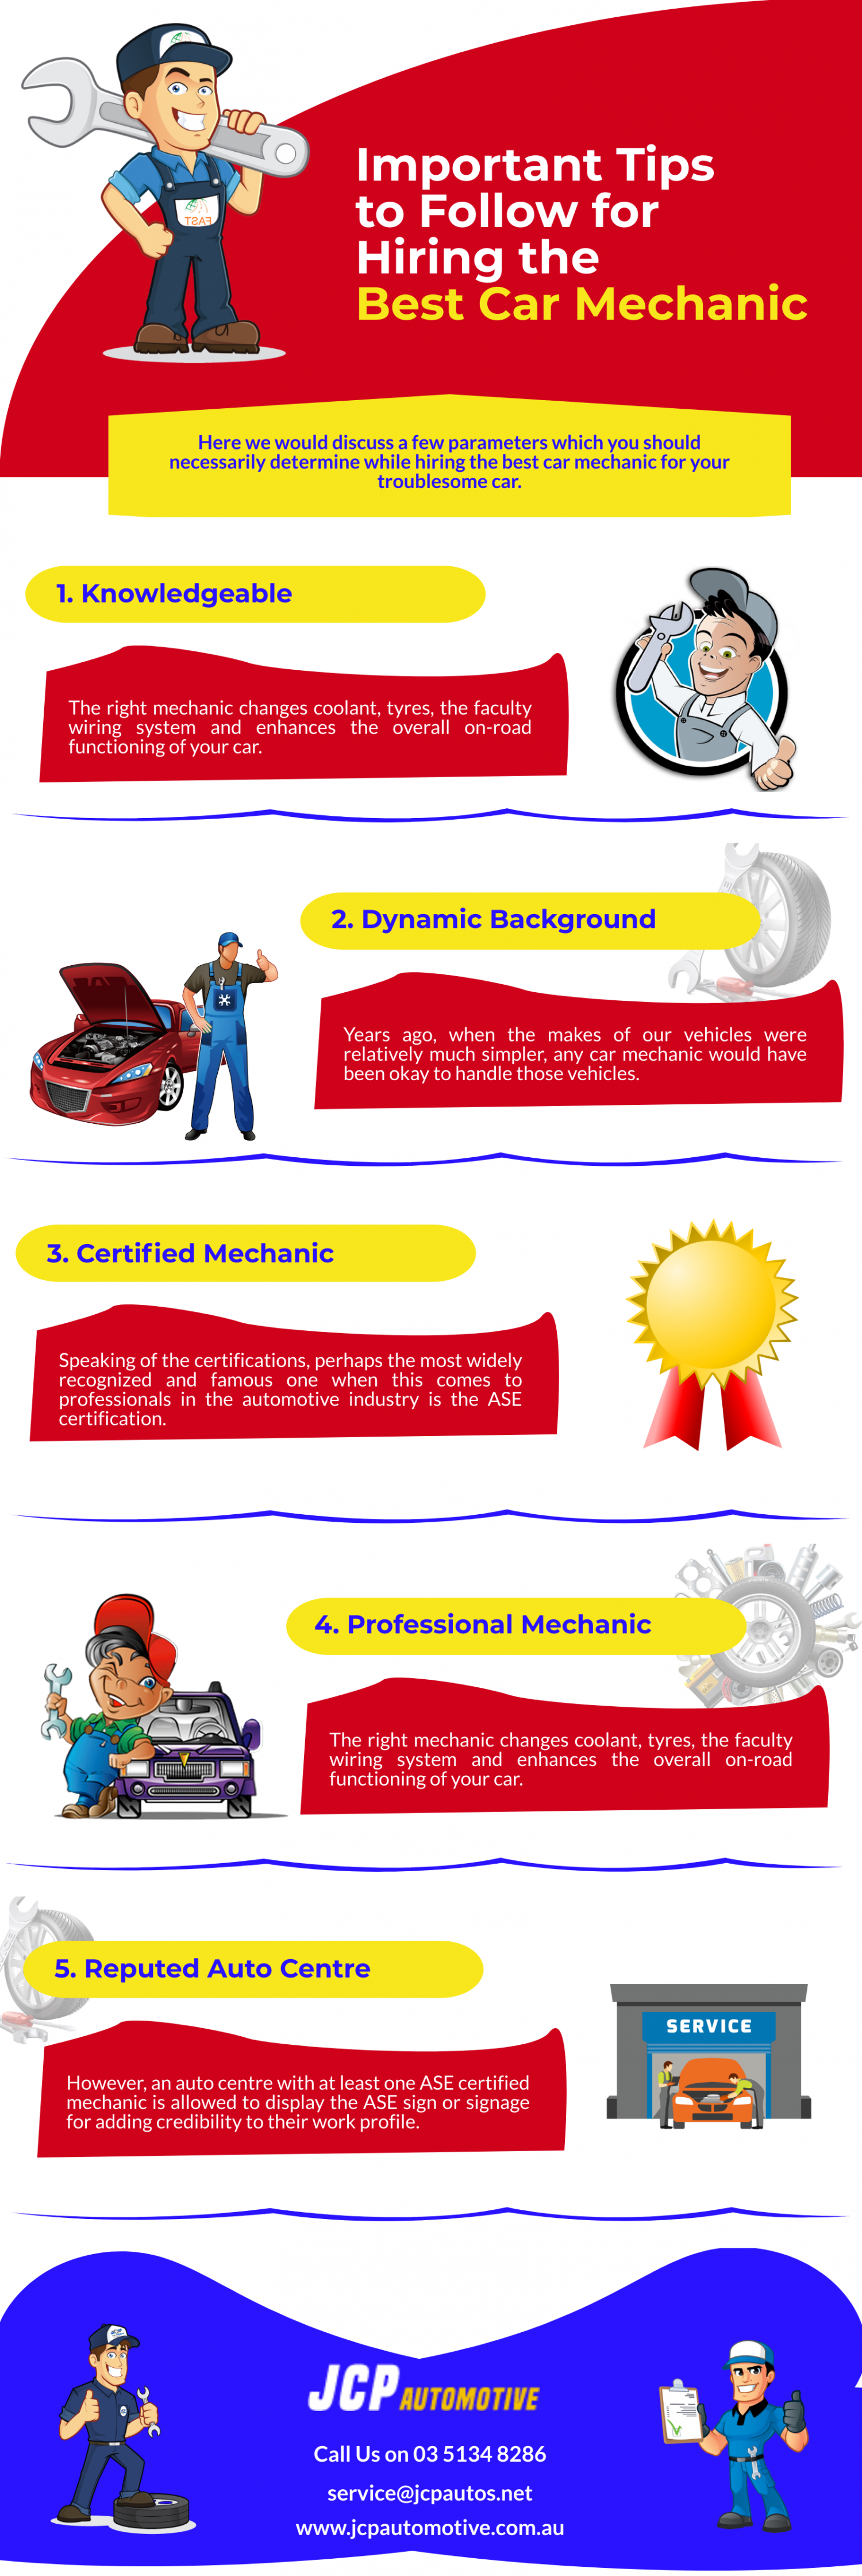 Important Tips to Follow for Hiring the Best Car Mechanic Infographic